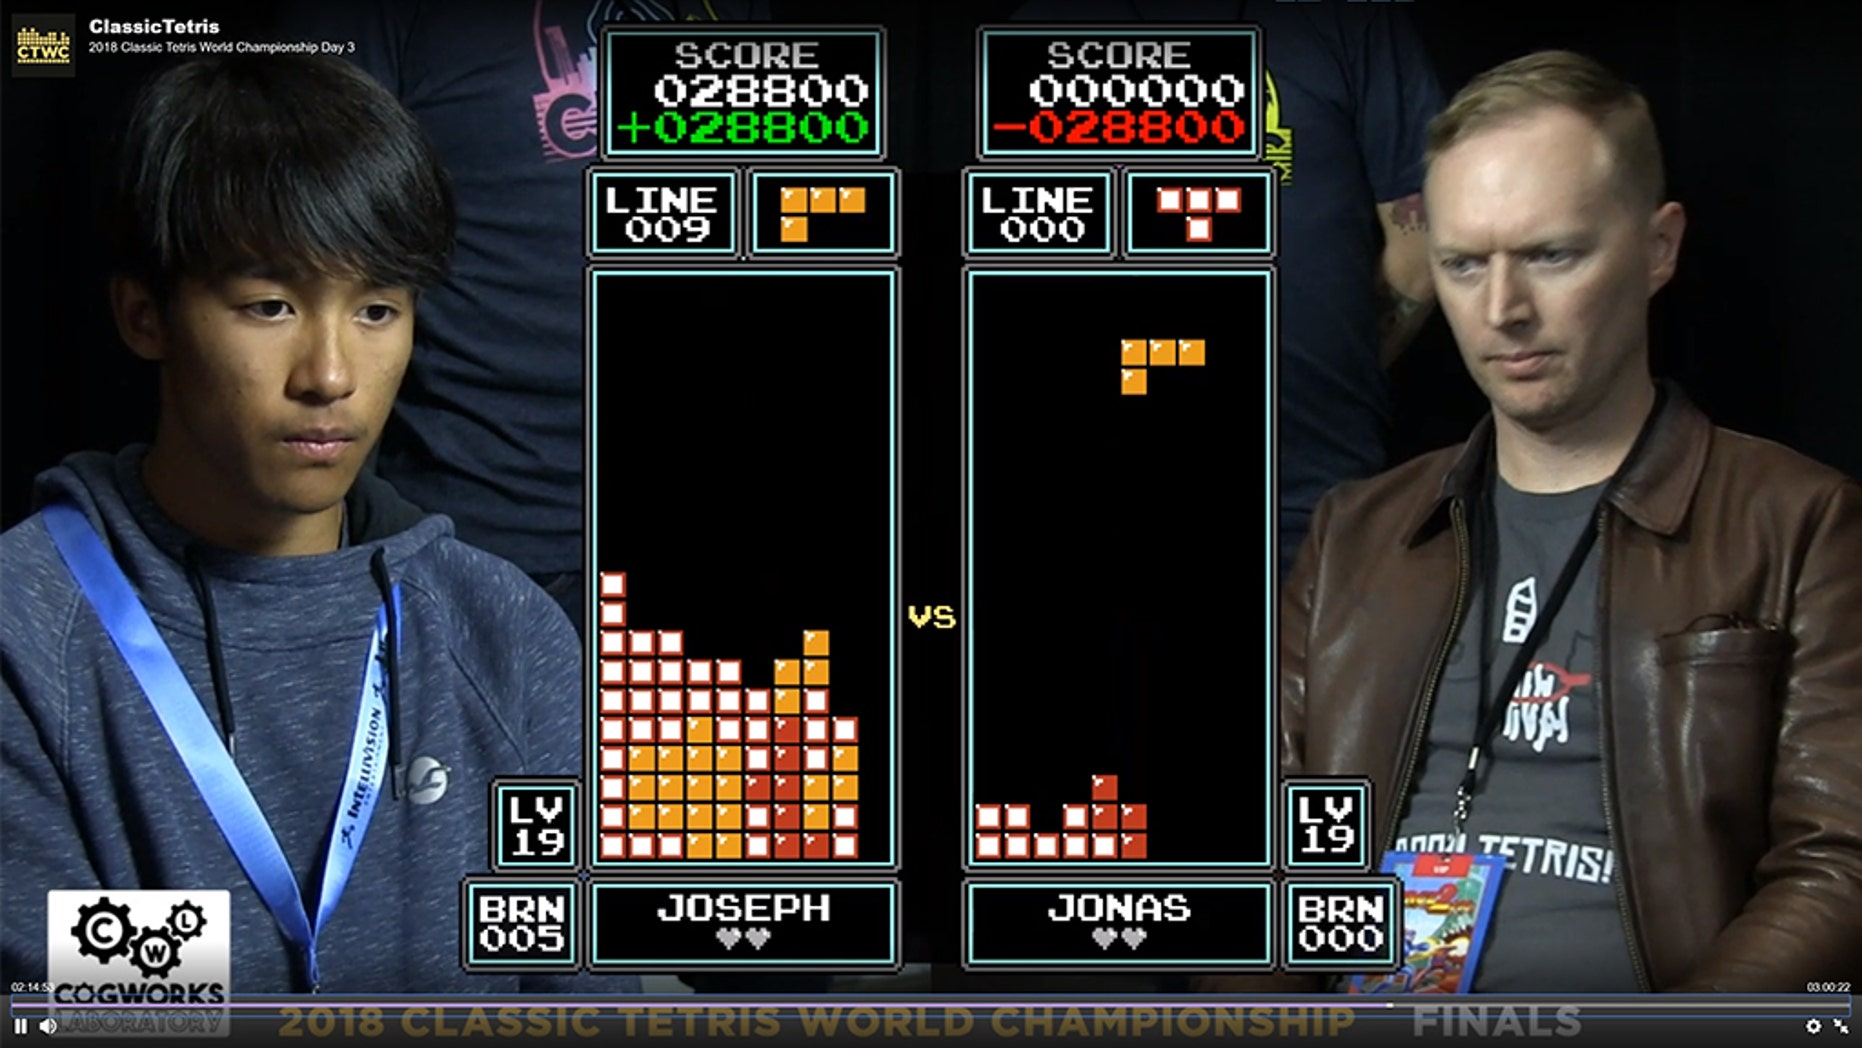 "Joseph Saelee (left) def. Jonas Neubauer (right) to win the Classic Tetris World Championship 201<div class=""e3lan e3lan-in-post1""><script async src=""//pagead2.googlesyndication.com/pagead/js/adsbygoogle.js""></script>